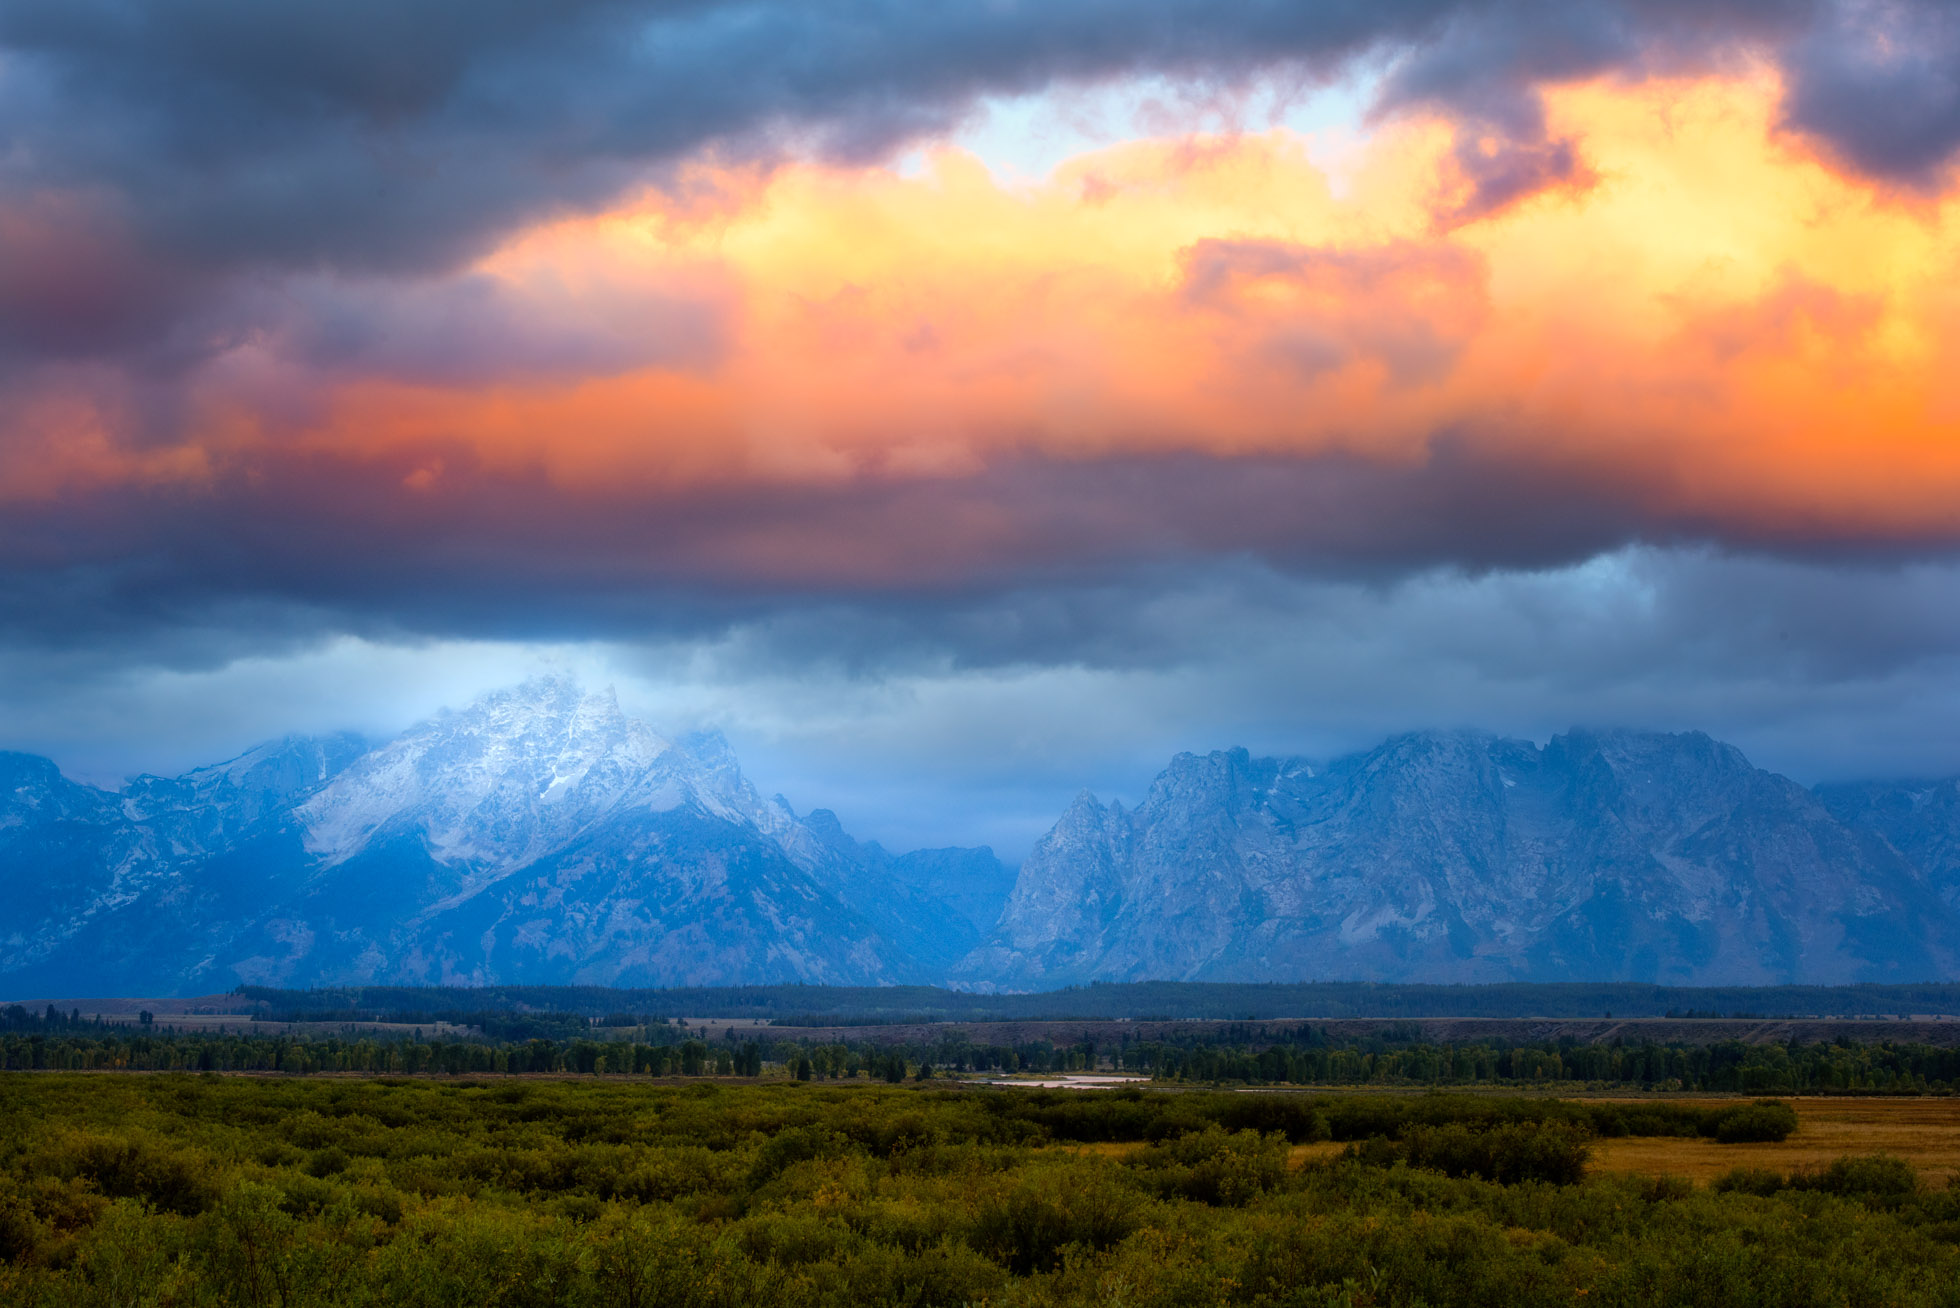 I watched the clouds drift over the Tetons for 2 hours this September morning.